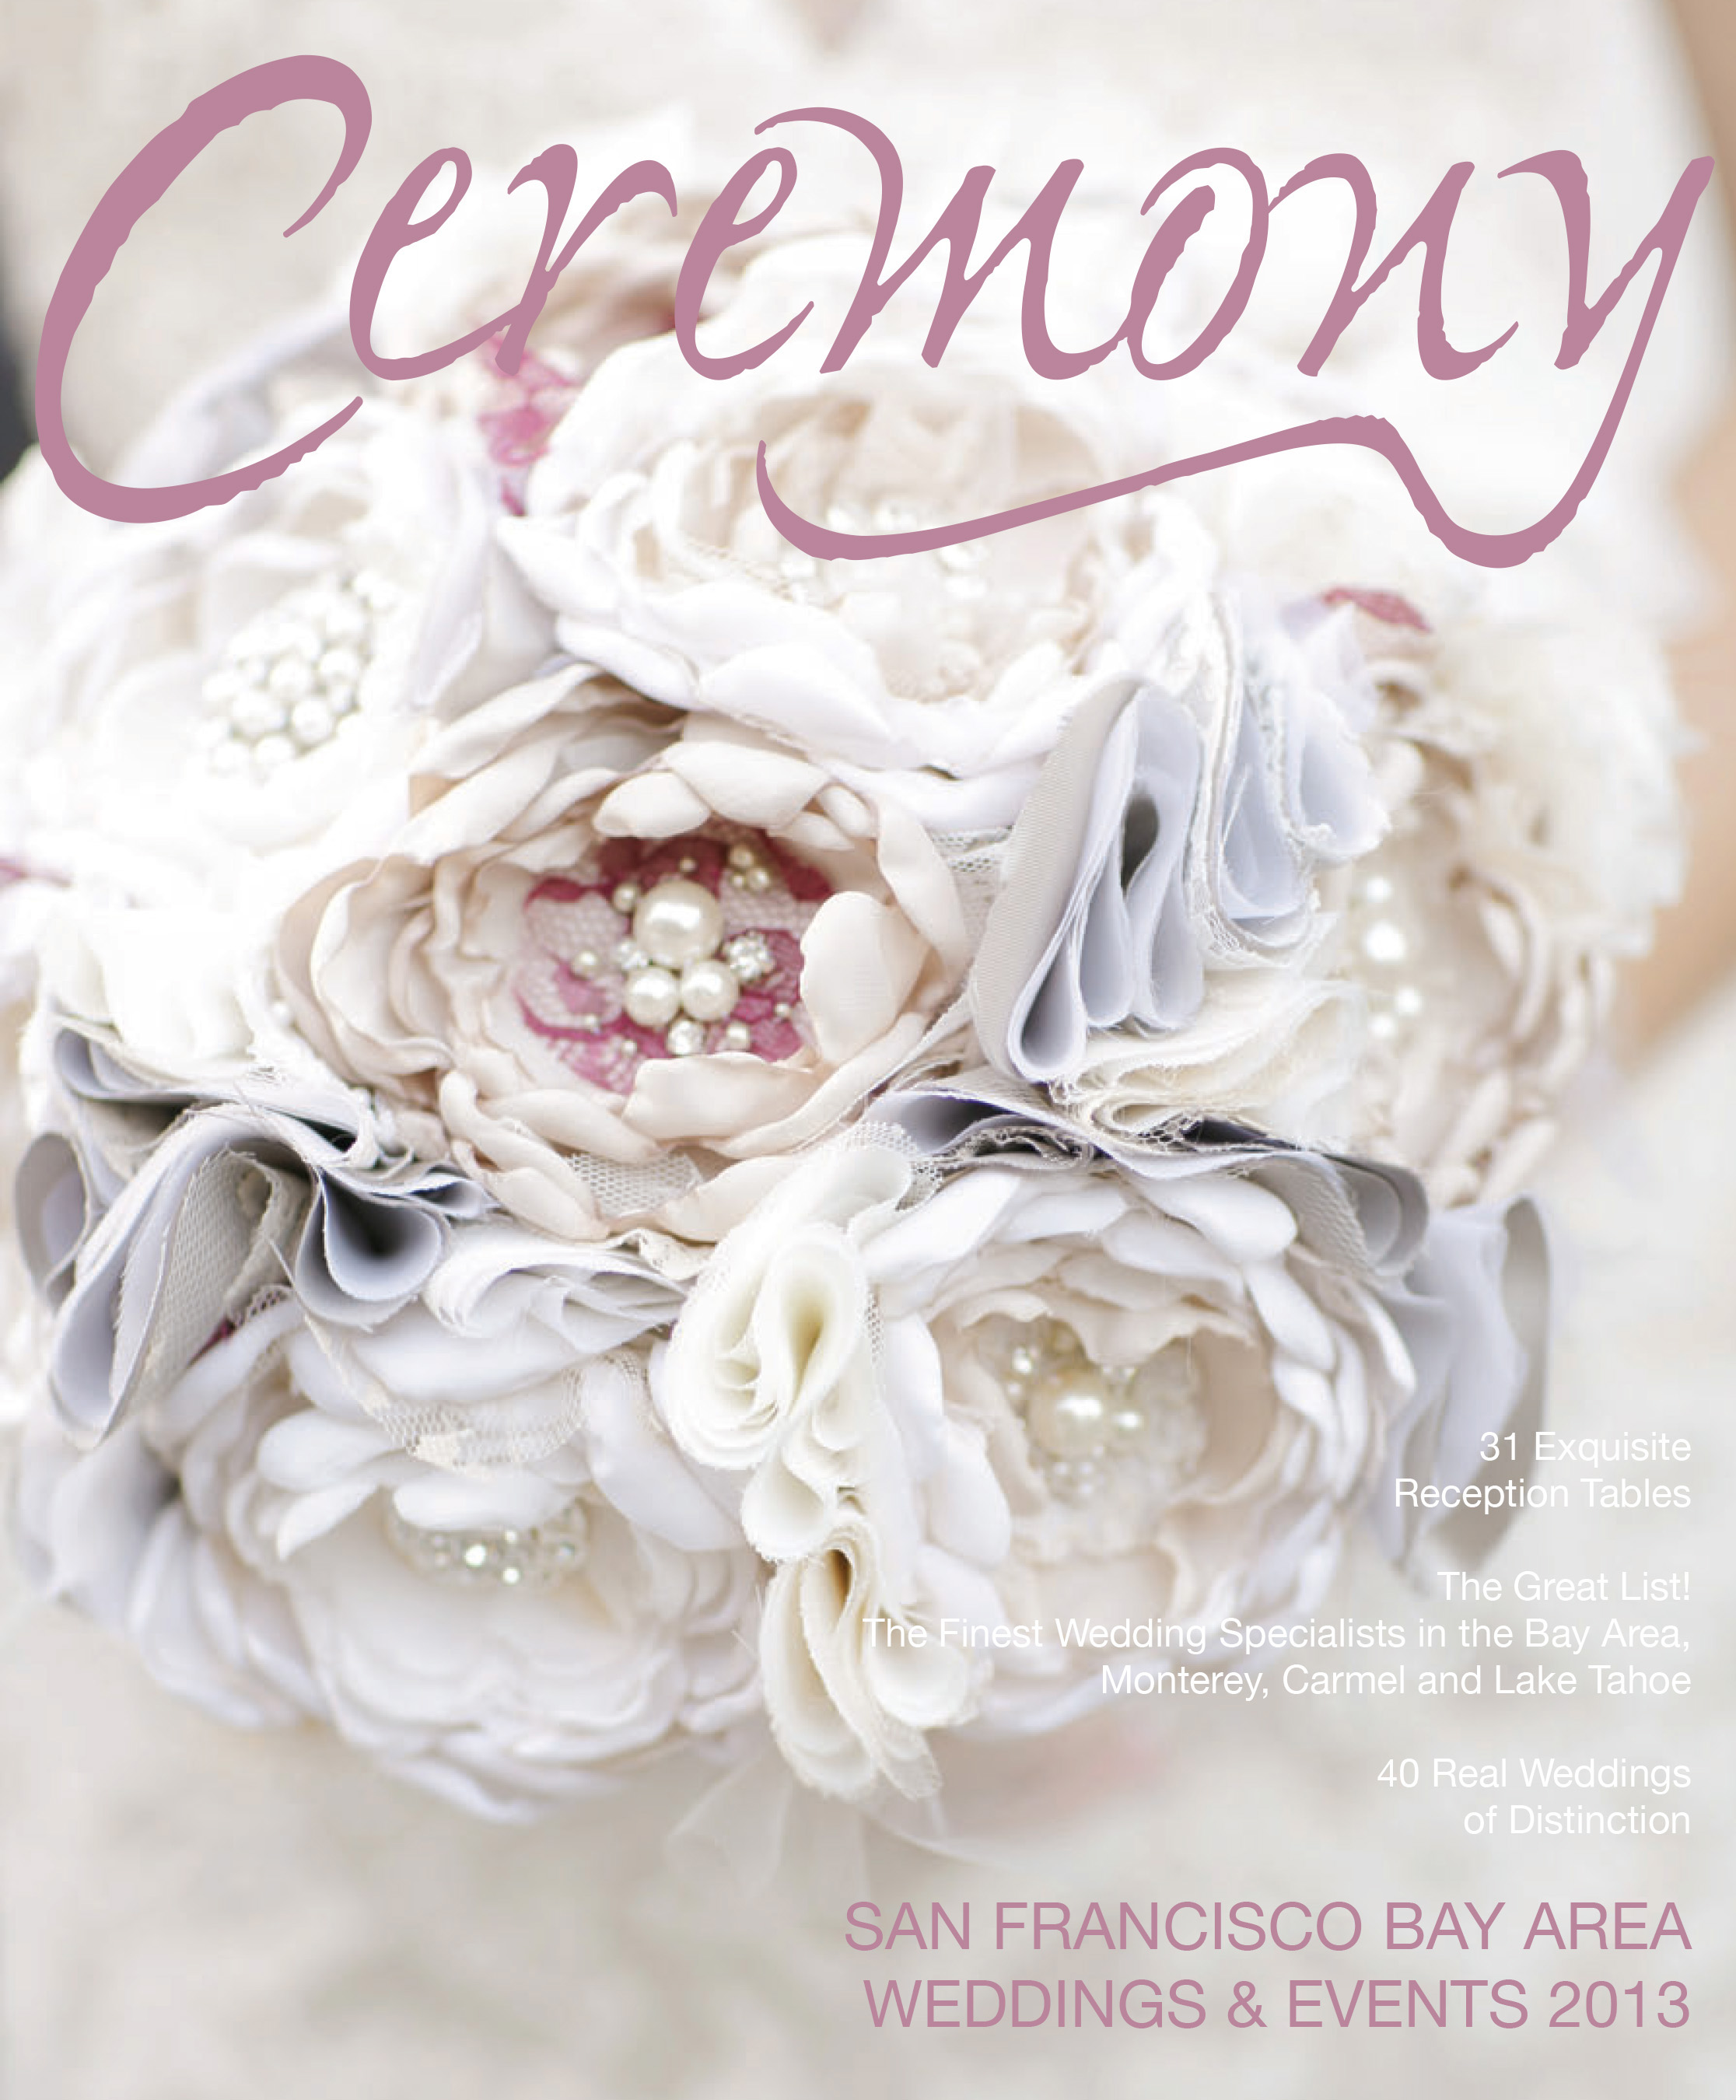 Ceremony Magazine 2013